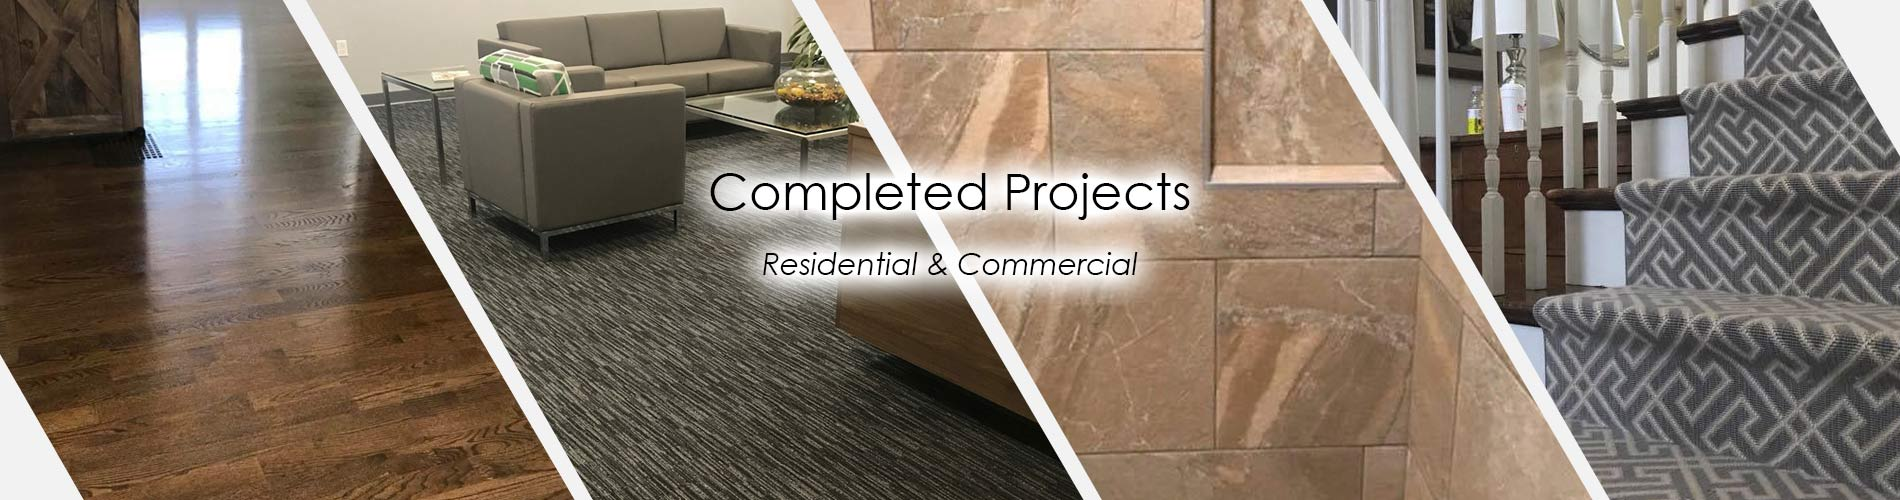 Completed Projects - Residential & Commercial